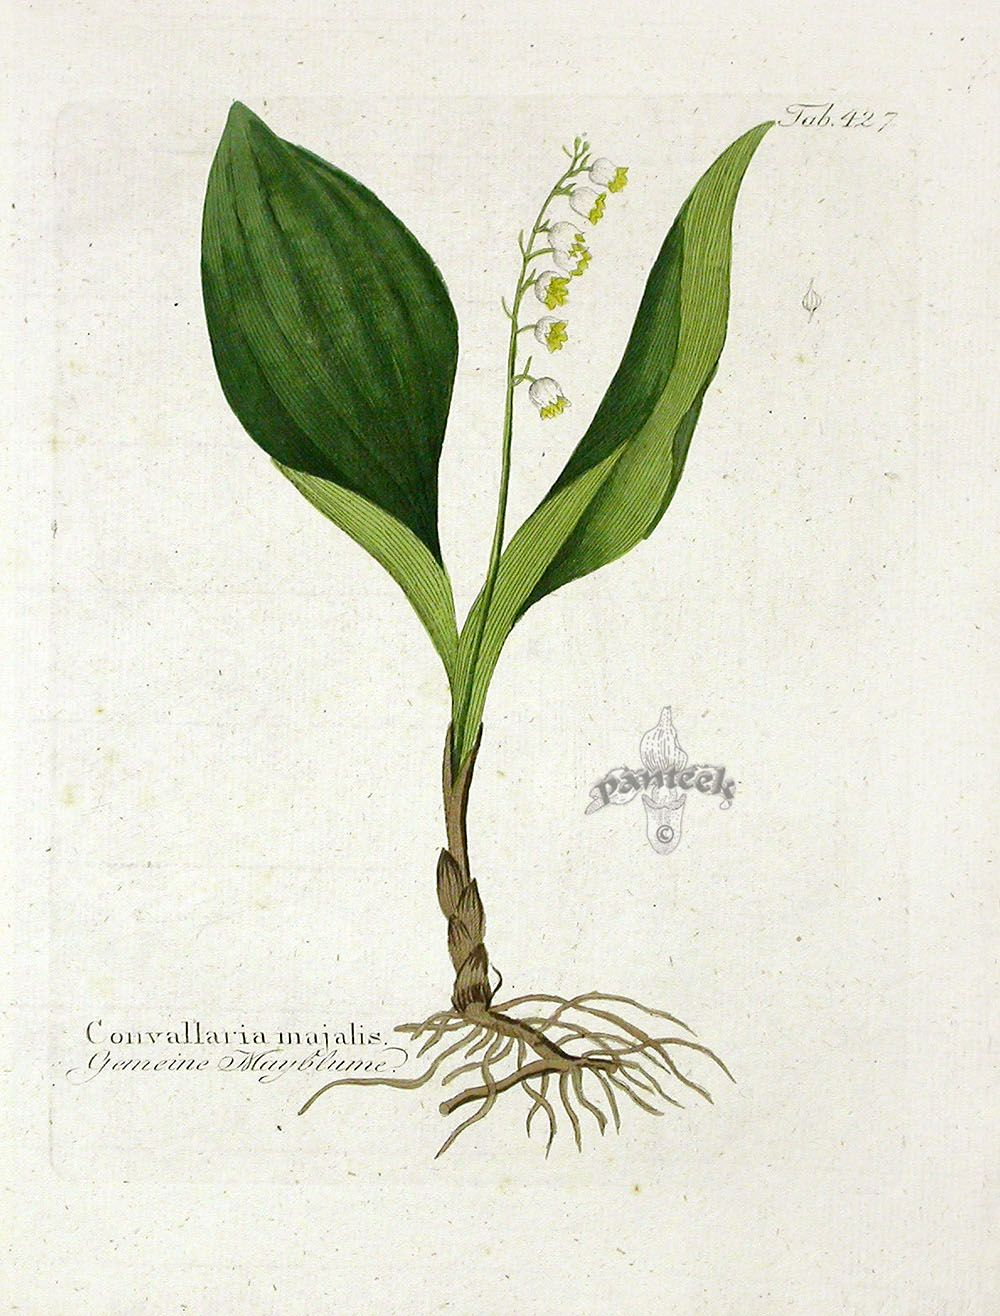 lily of the valley botany print - Google Search